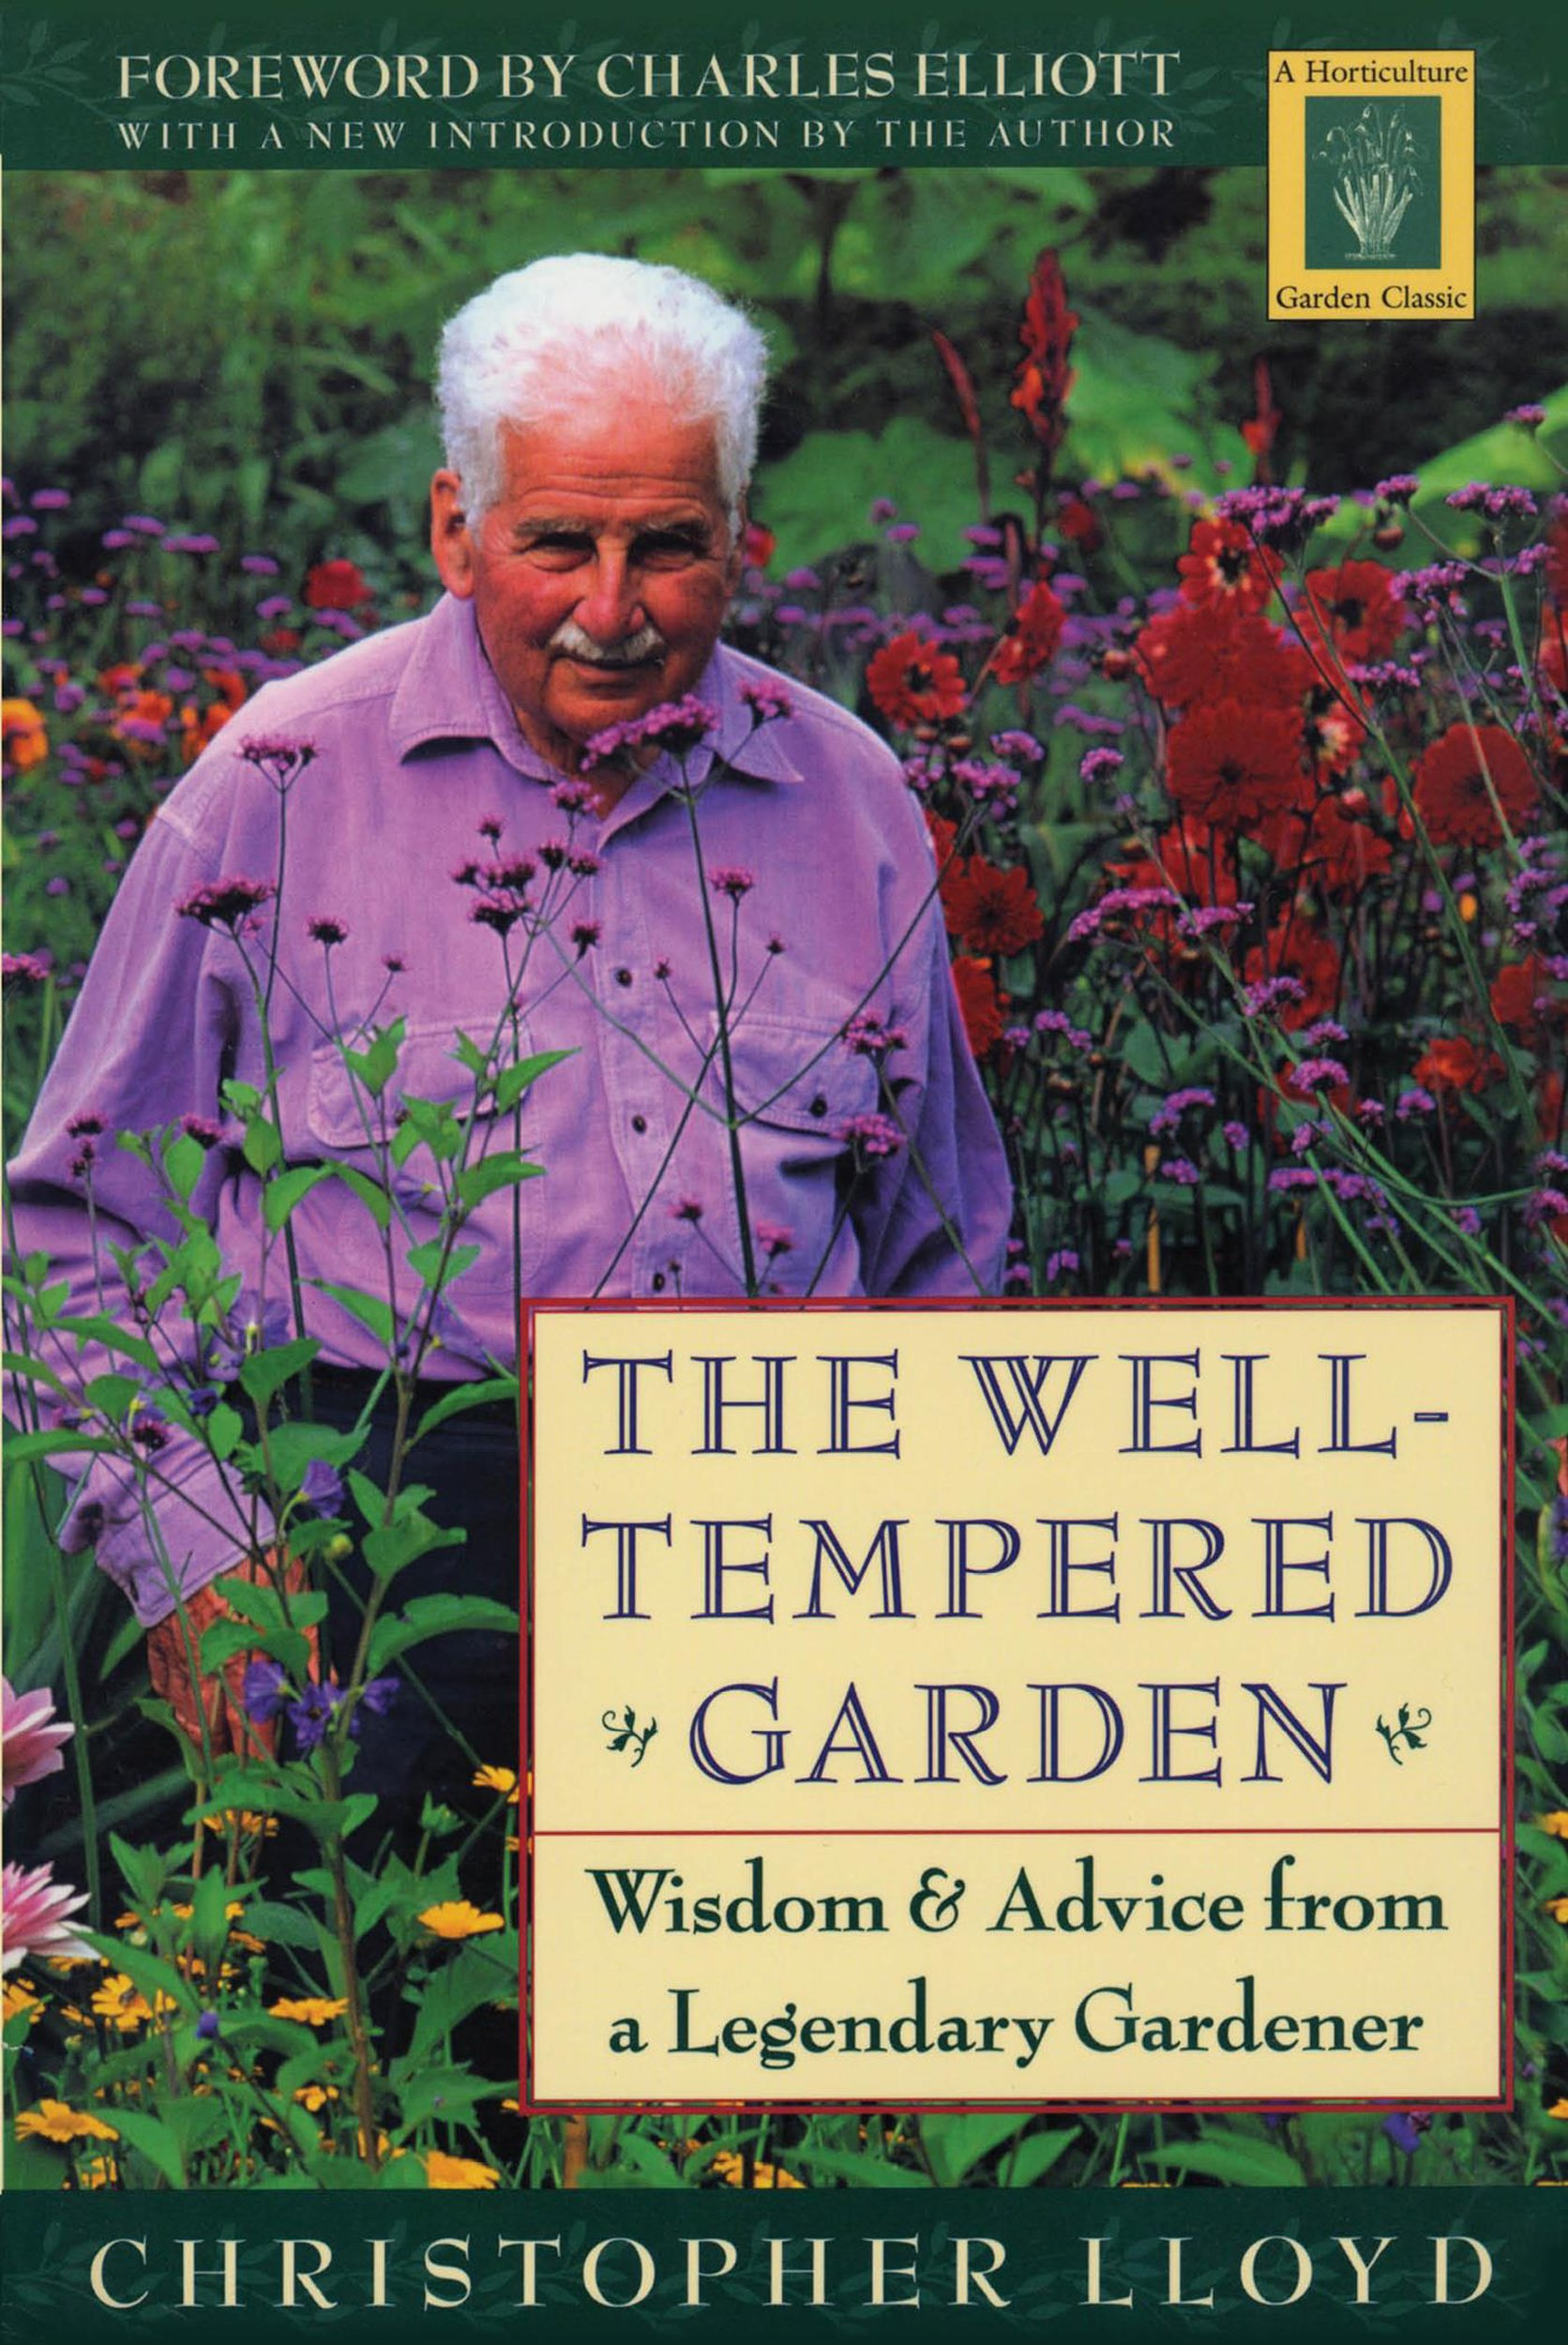 The Well-Tempered Garden (Horticulture Garden Classic) PDF